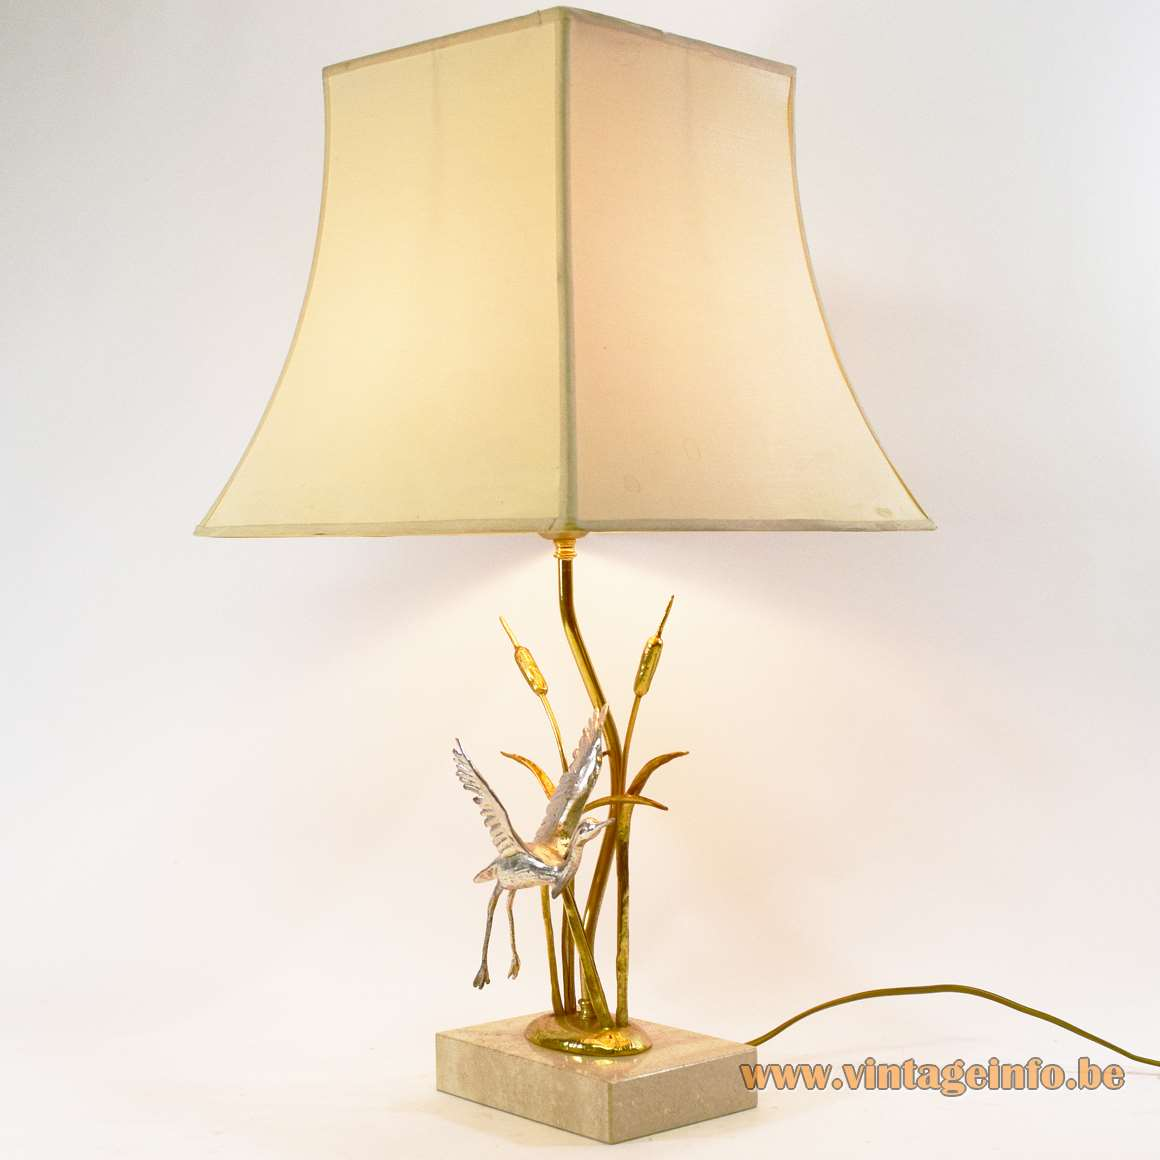 Cattails & herons table lamp gilded silver-plated bronze brass travertine limestone 1970s 1980s Hollywood Regency